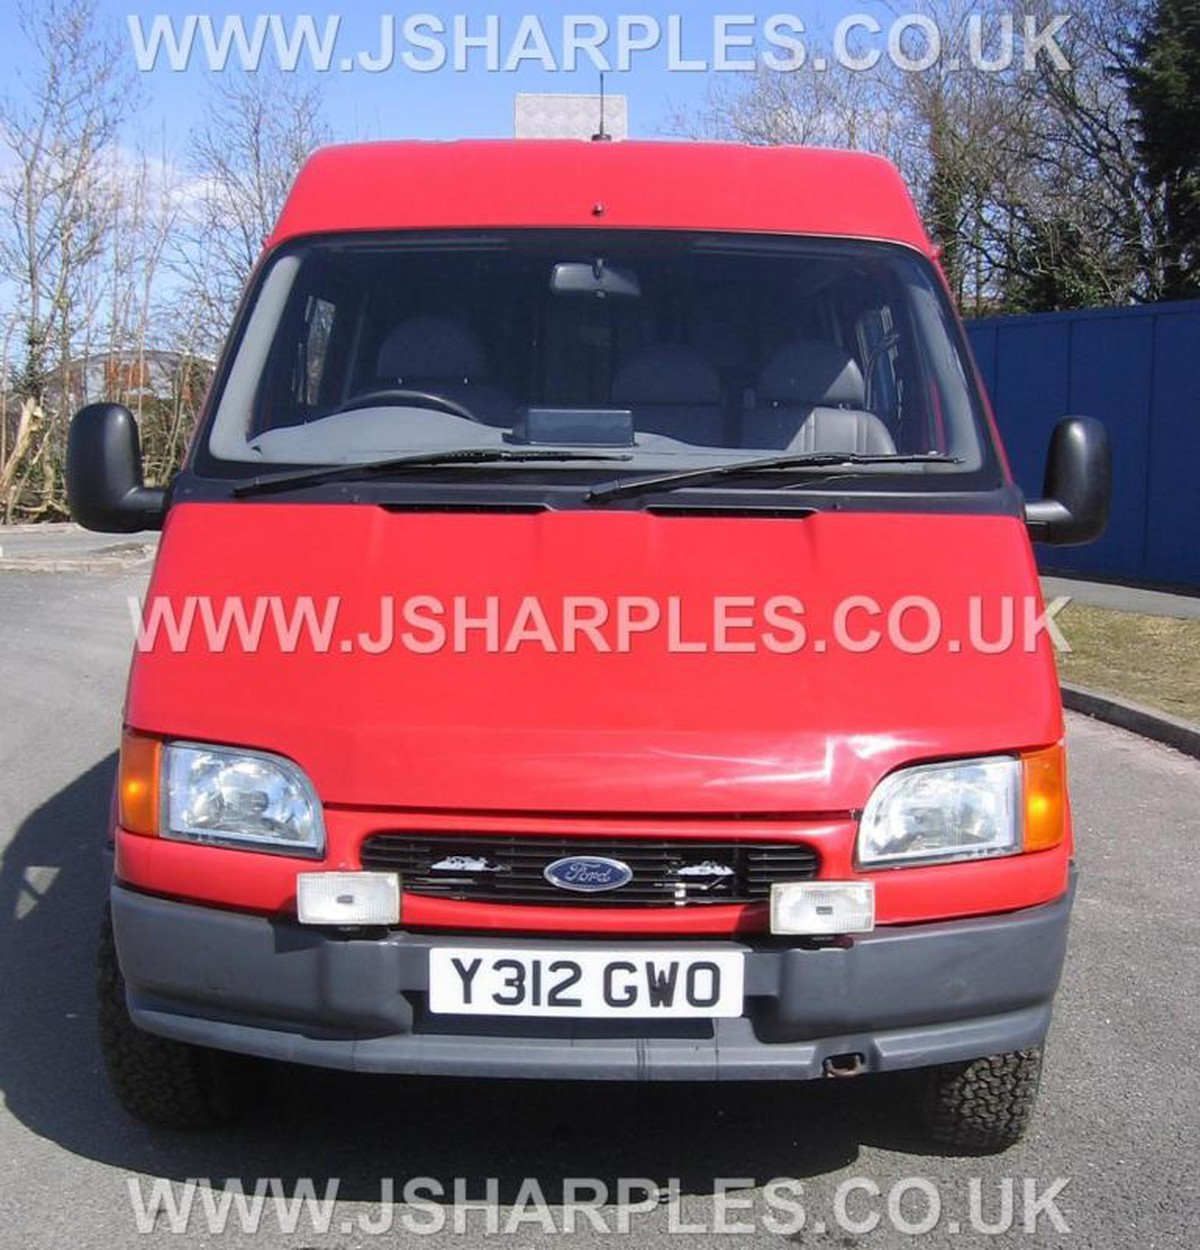 Swiss Vans Large Uk Ford: Secondhand Lorries And Vans